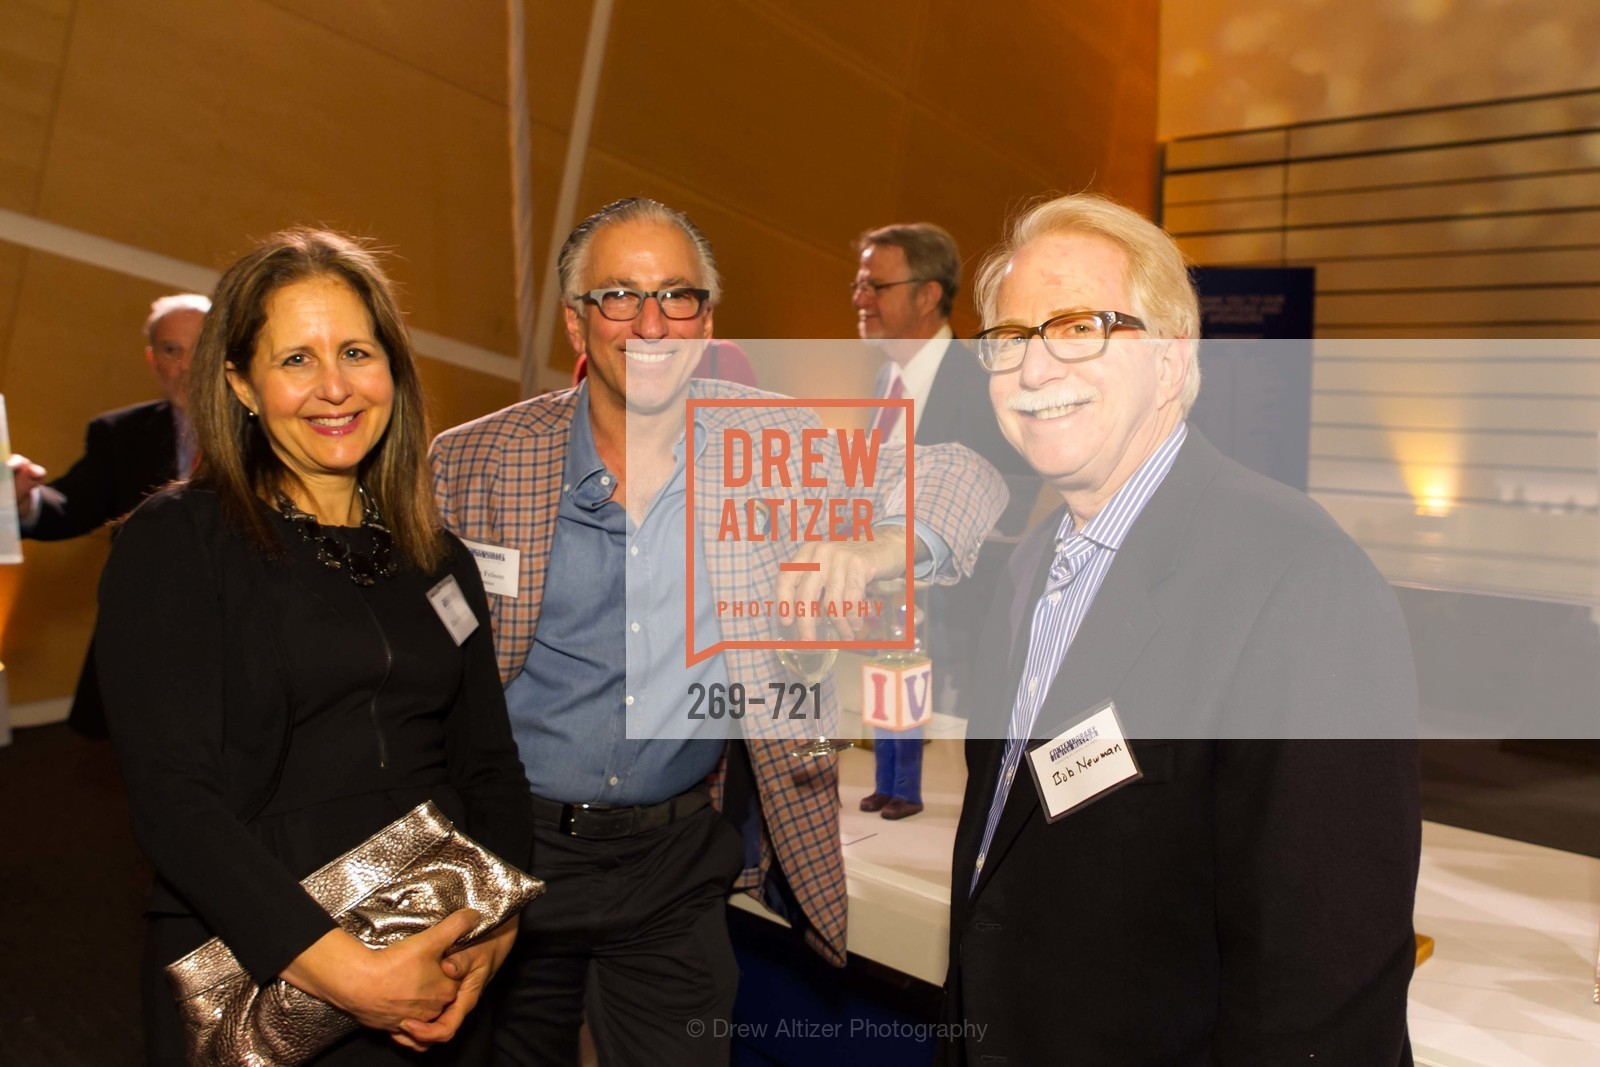 Elliott Felson, Bob Newman, The 2015 Dorothy Saxe Invitational Celebration at the JEWISH MUSEUM, US, May 13th, 2015,Drew Altizer, Drew Altizer Photography, full-service agency, private events, San Francisco photographer, photographer california